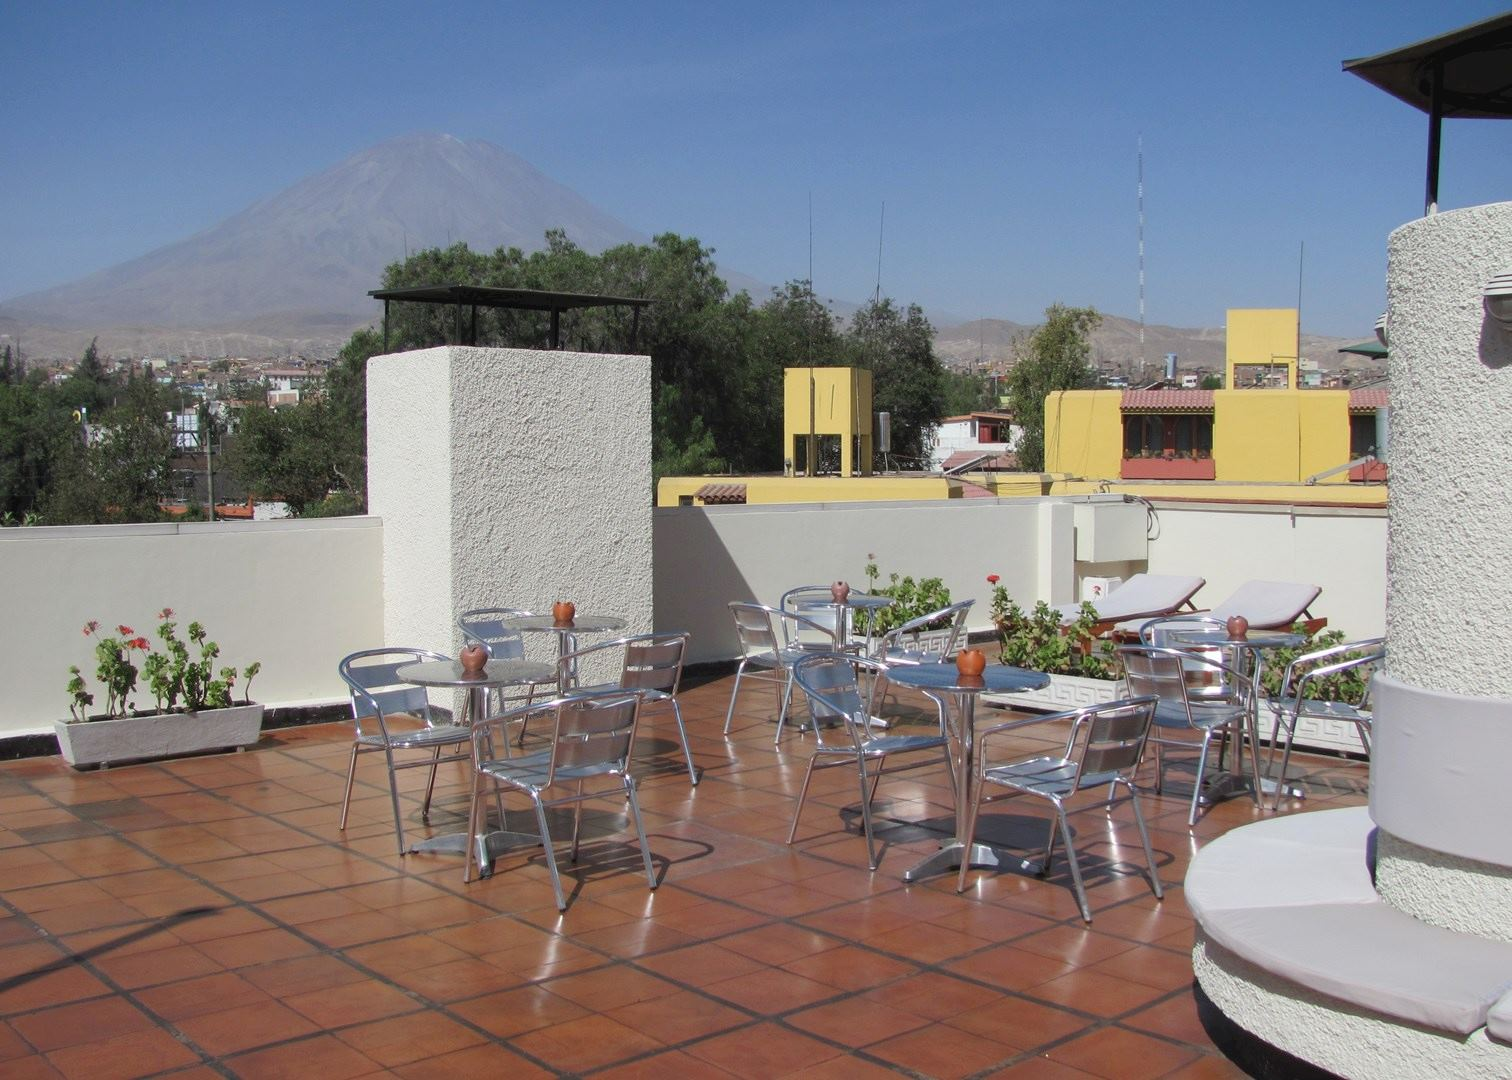 Casa andina classic arequipa arequipa audley travel for Casa andina classic